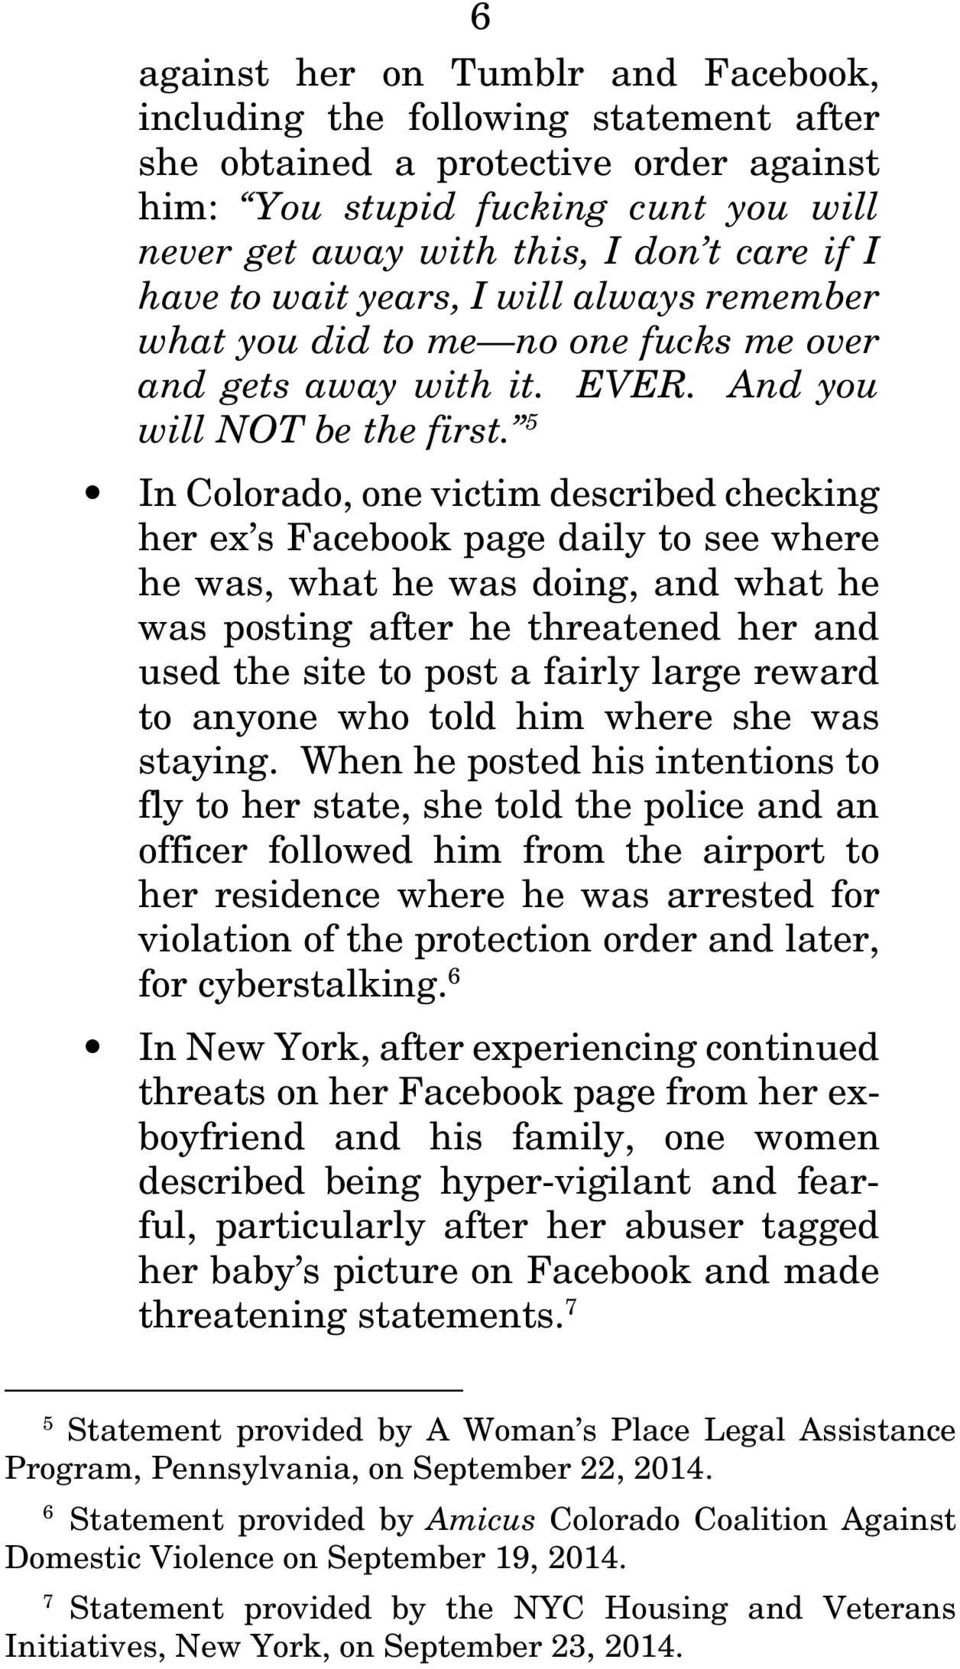 5 In Colorado, one victim described checking her ex s Facebook page daily to see where he was, what he was doing, and what he was posting after he threatened her and used the site to post a fairly